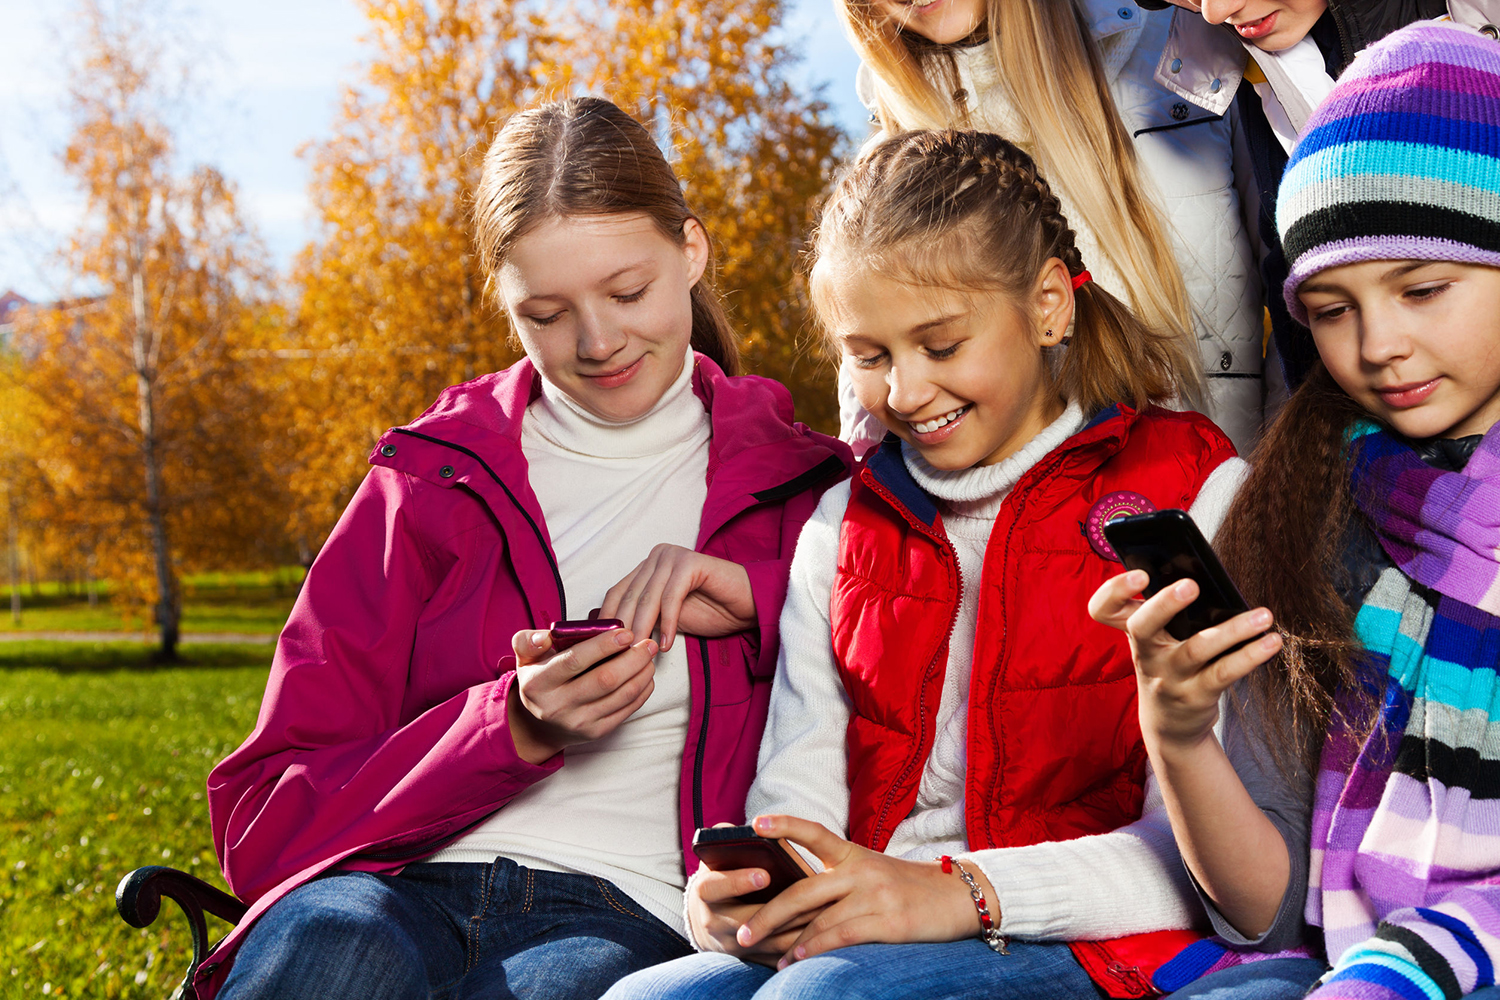 kids and mobile phones Mobile phones have completely changed the way people interact you can call, send text messages, read emails, play games as well as read and edit documents on the go today, the mobile phone has become part and parcel of many people's lives.